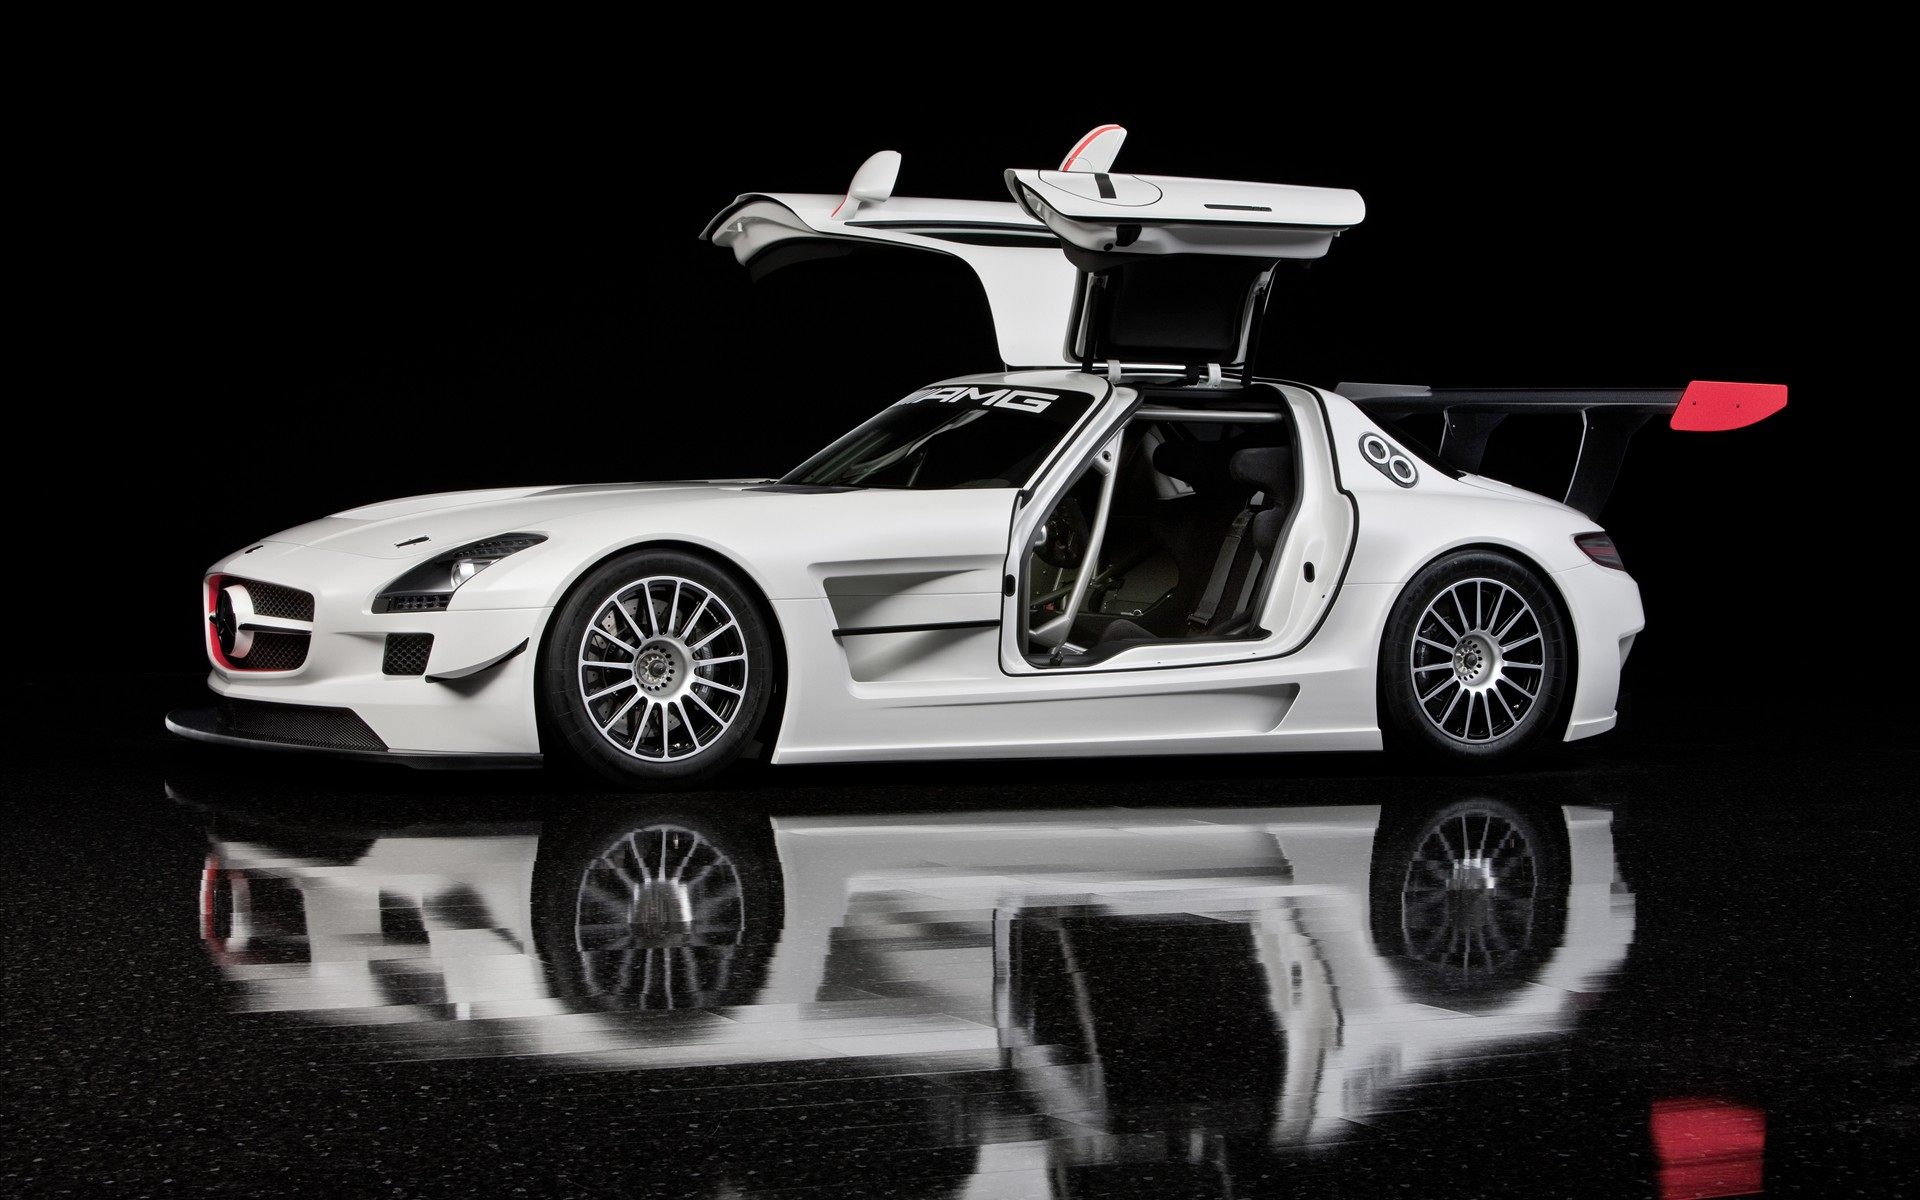 Mercedes Benz Images Mercedes Benz Sls Amg White Hd Wallpaper And